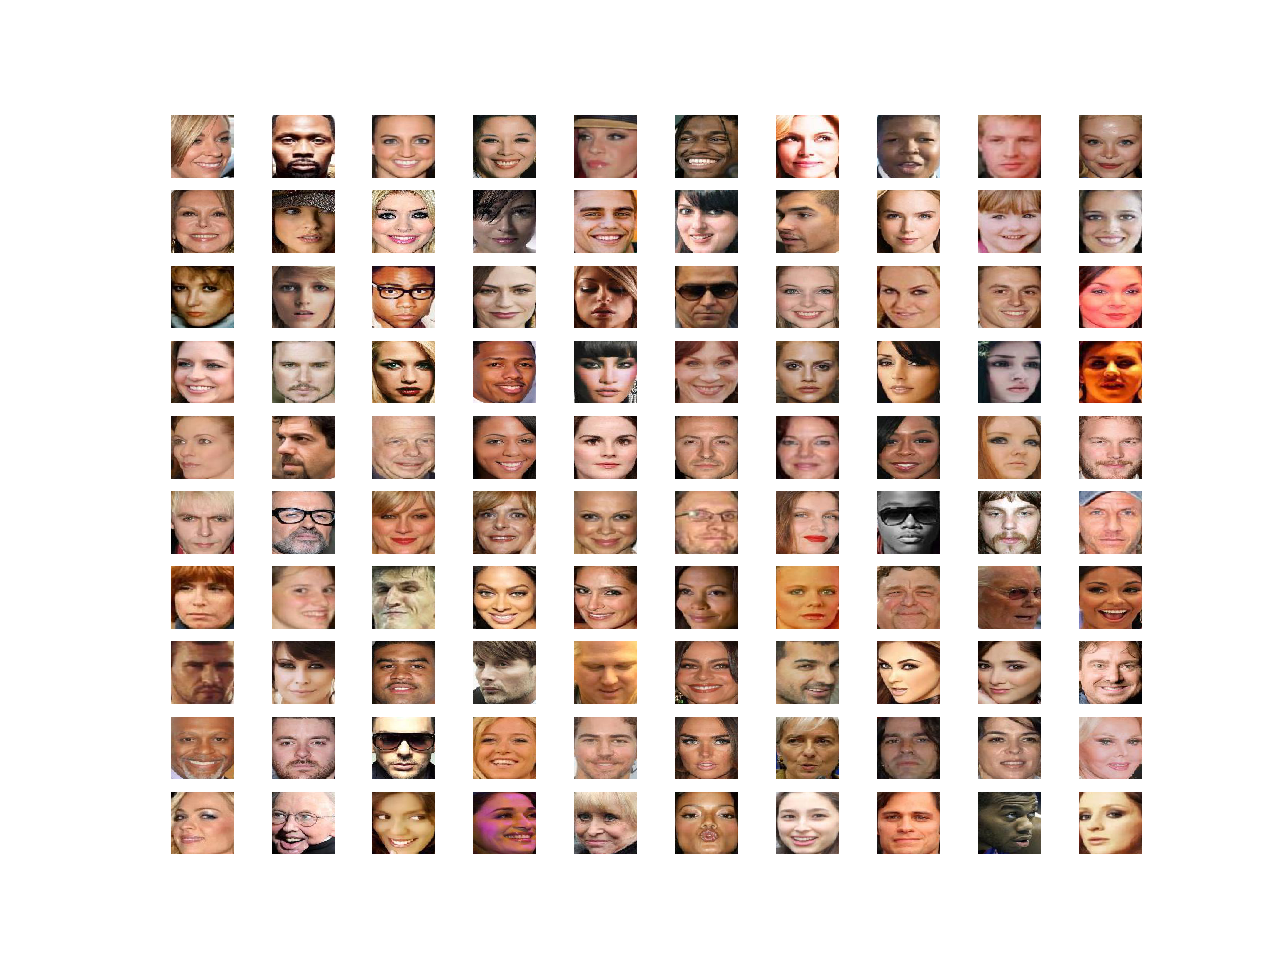 Plot of 100 Celebrity Faces in a 10x10 Grid